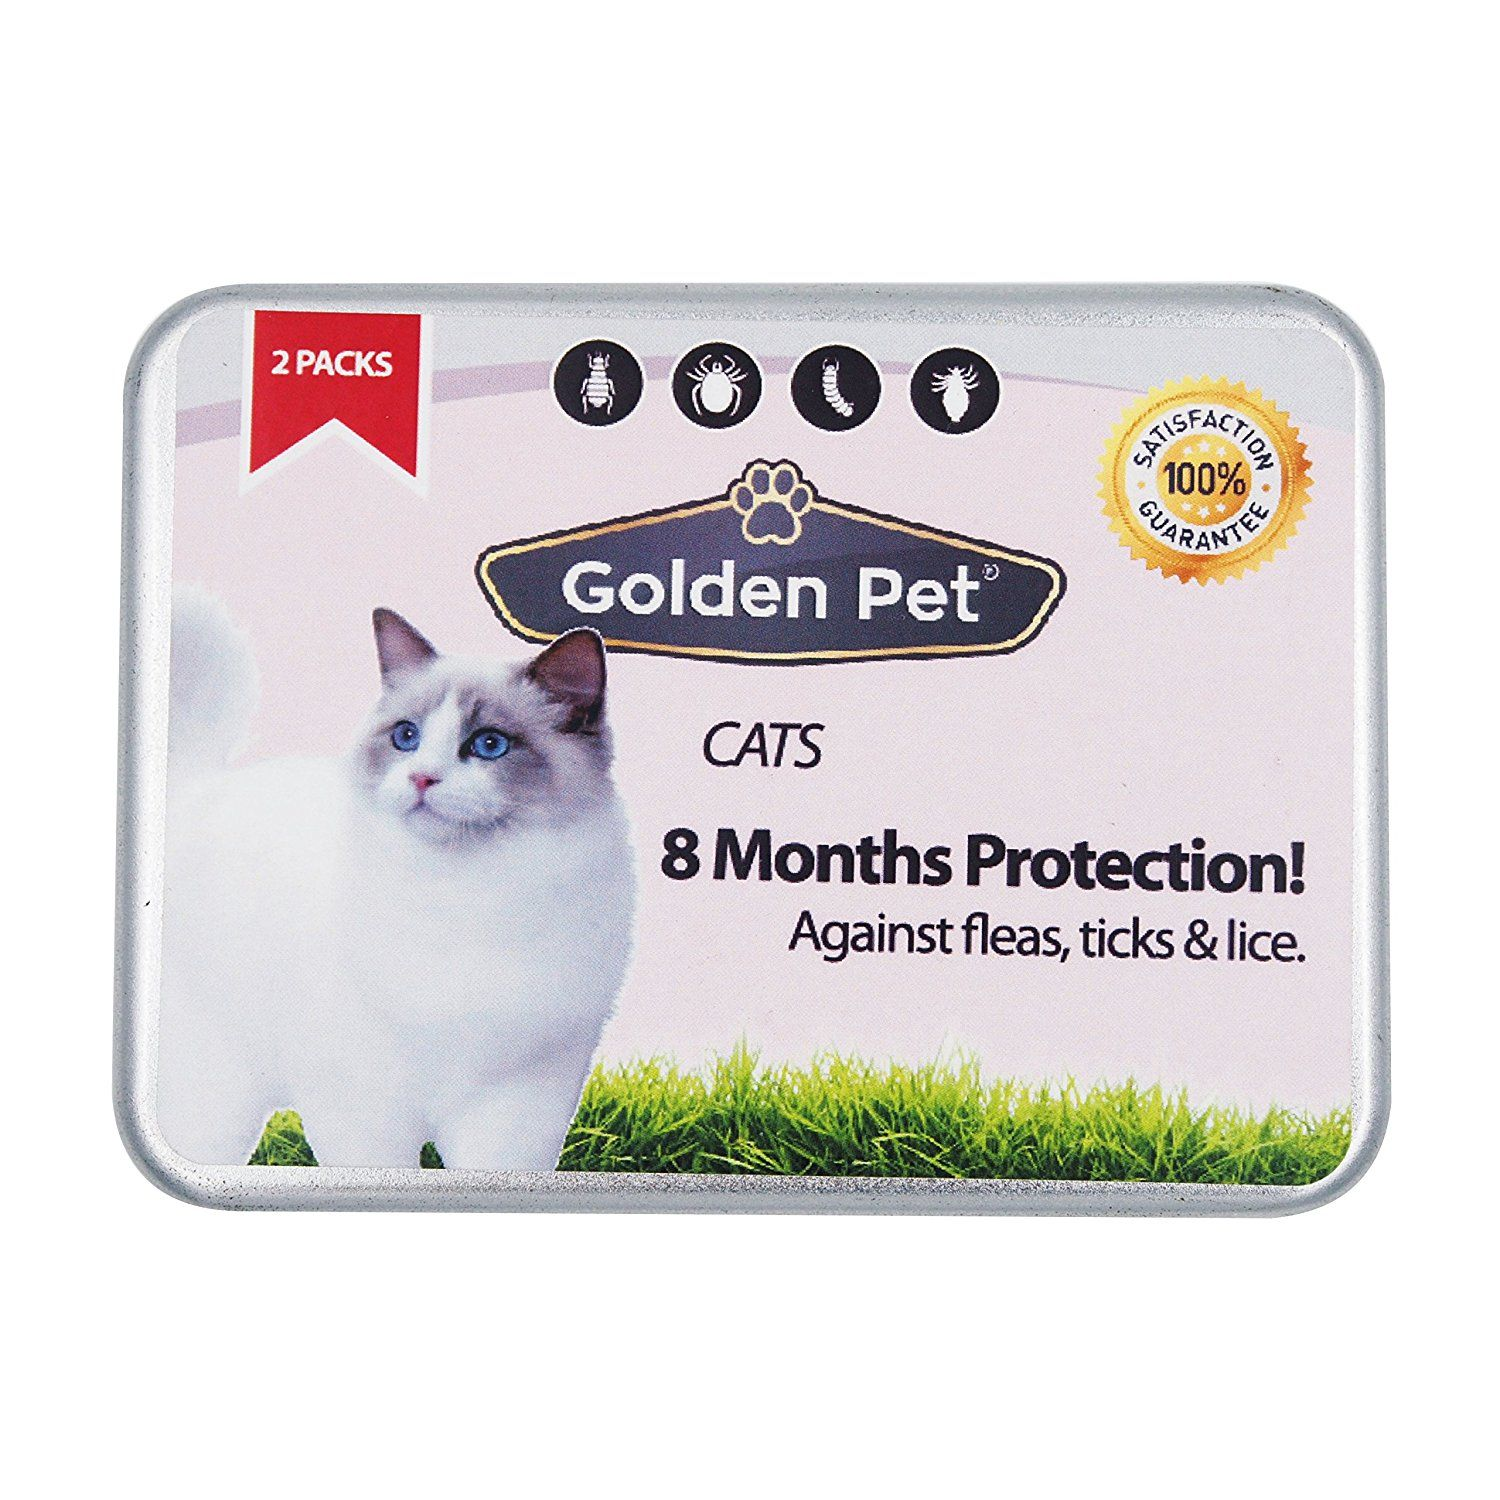 Cat Tick And Flea Collar 8 Months Protection Waterproof All Sizes Click Image For More Details This Is An Affiliate Link Cat Fleas Dog Items Dog Pin